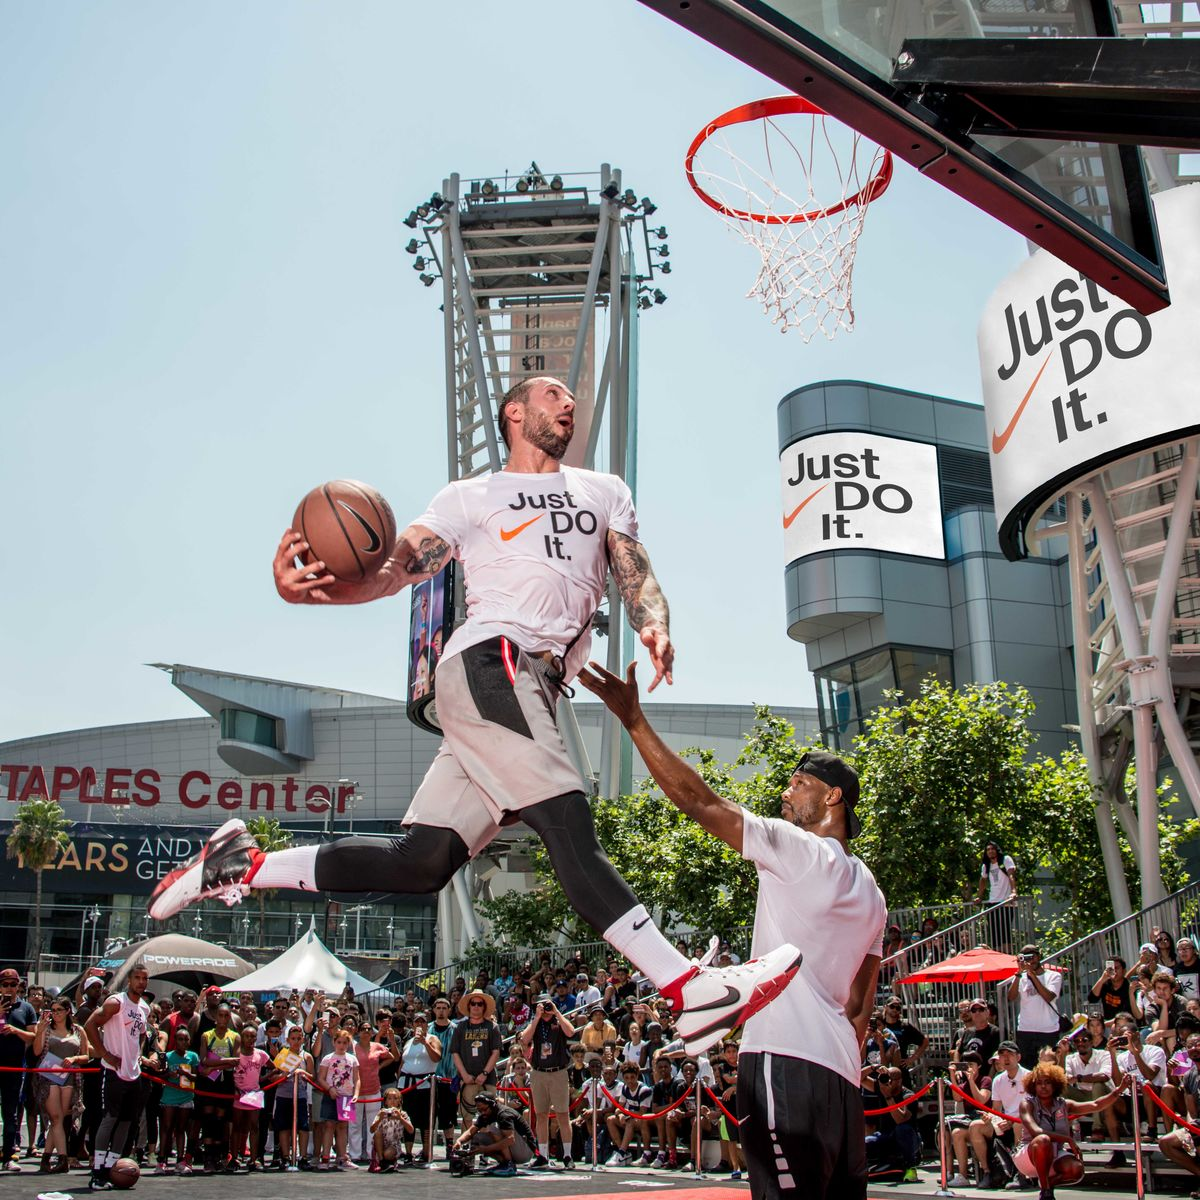 A man is mid jump during his slam dunk attempt at the Nike Basketball Slam Dunk Contest at L.A. LIVE